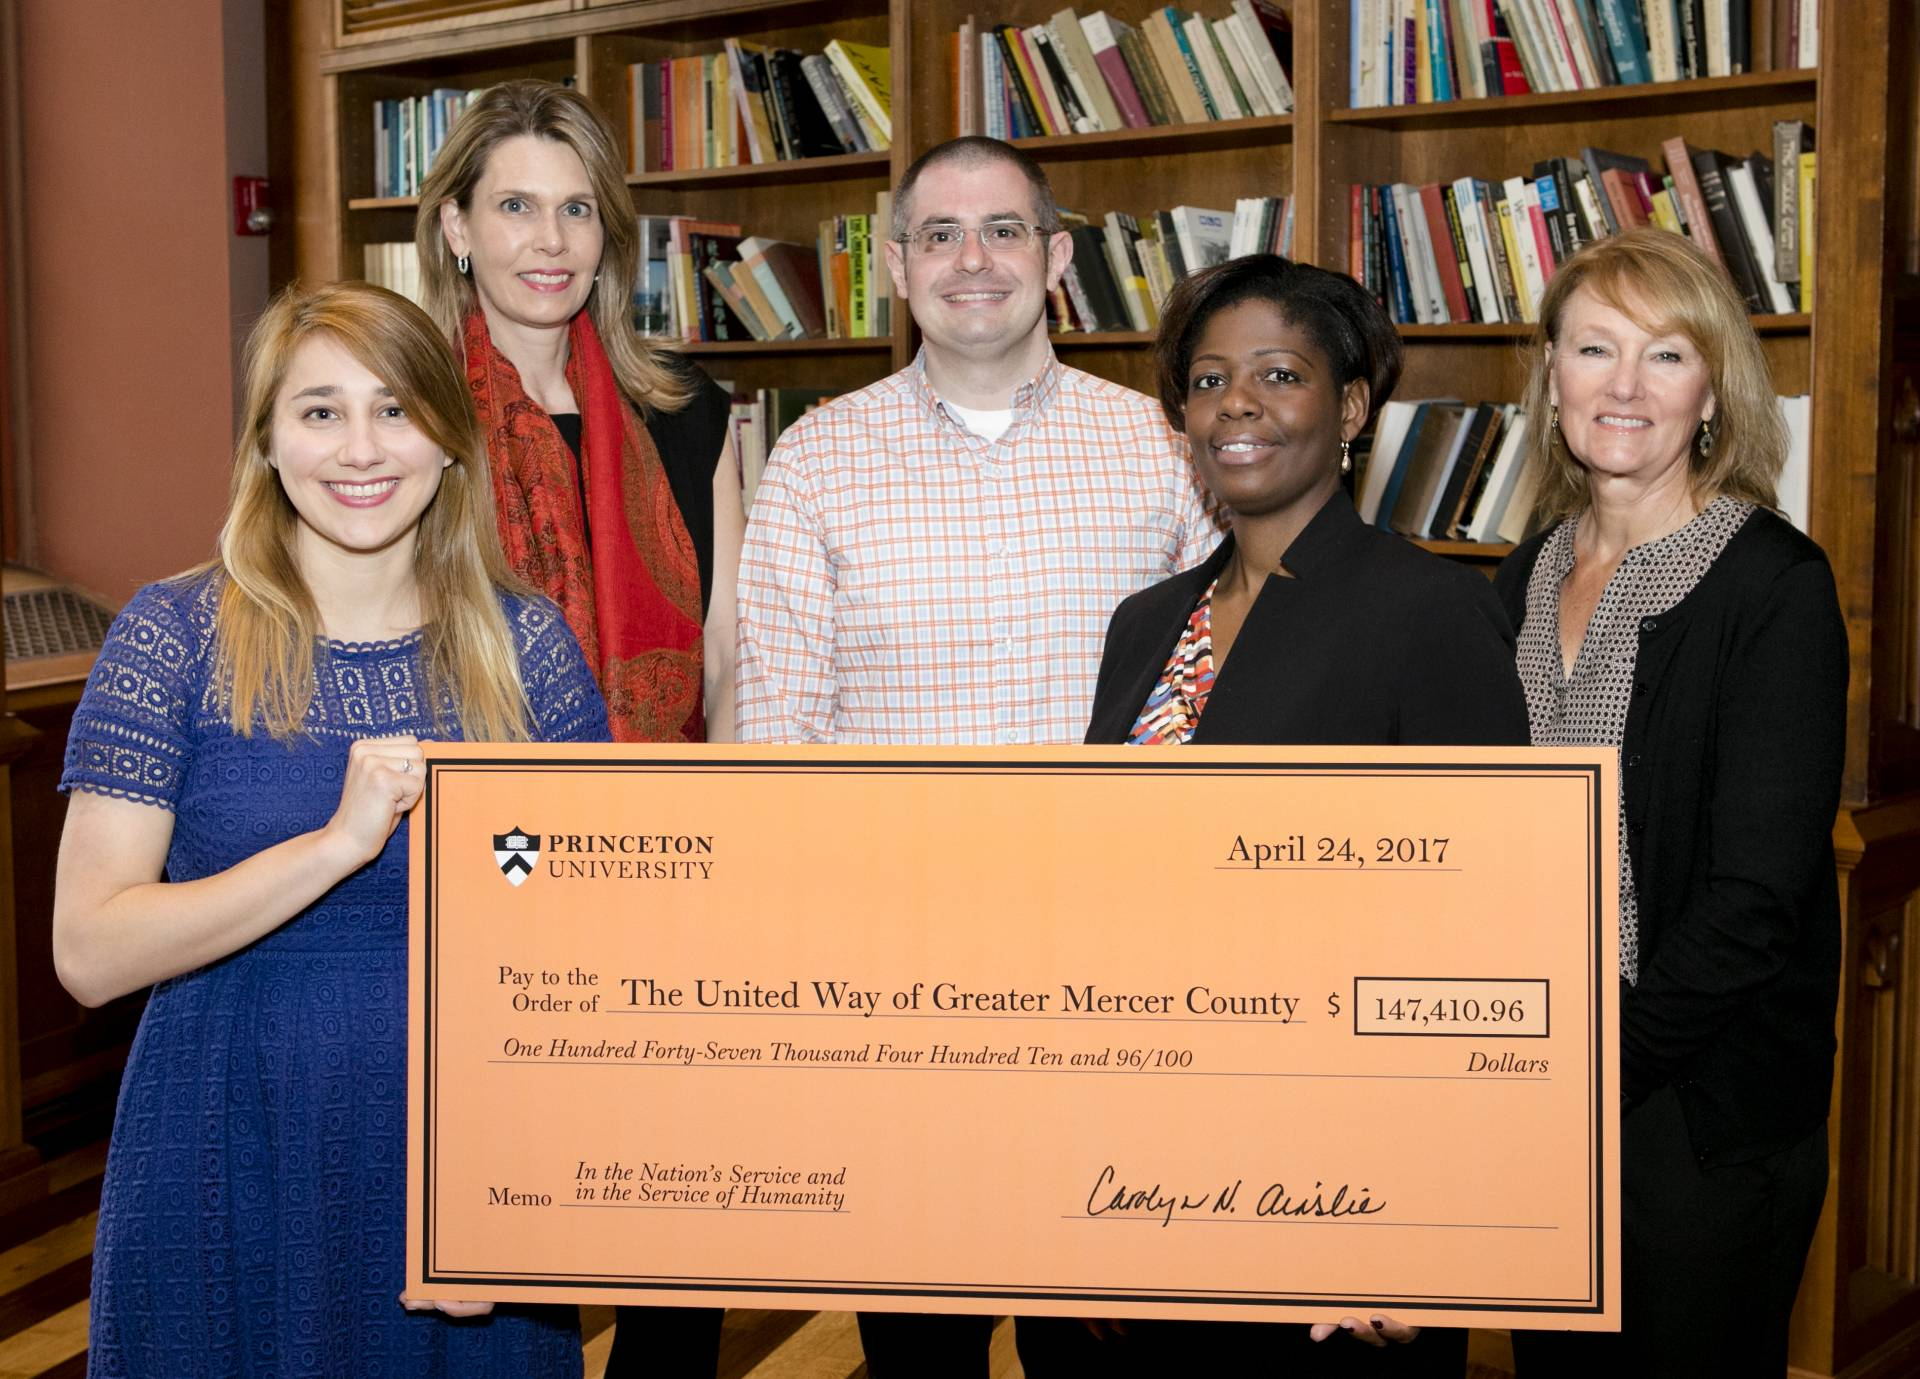 United Way and Princeton University staff holding donation check